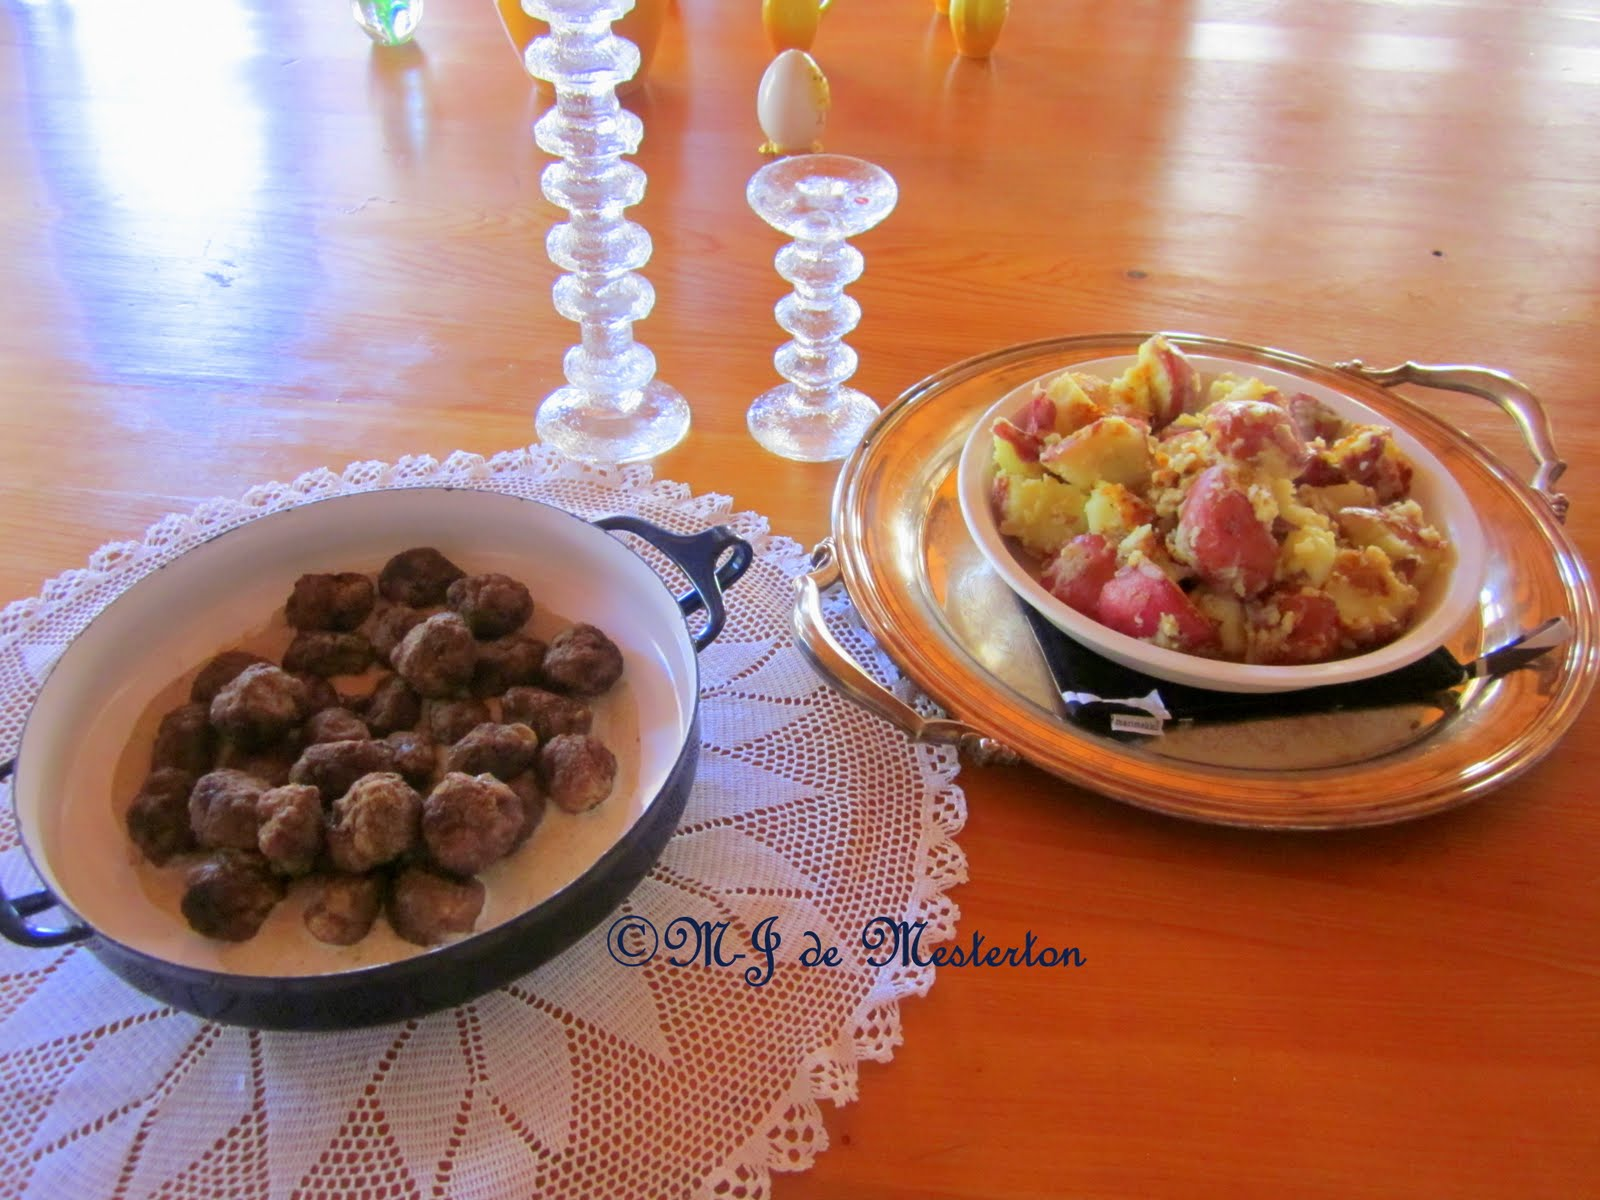 Serve Swedish meatballs with new potatoes and perhaps a little ...